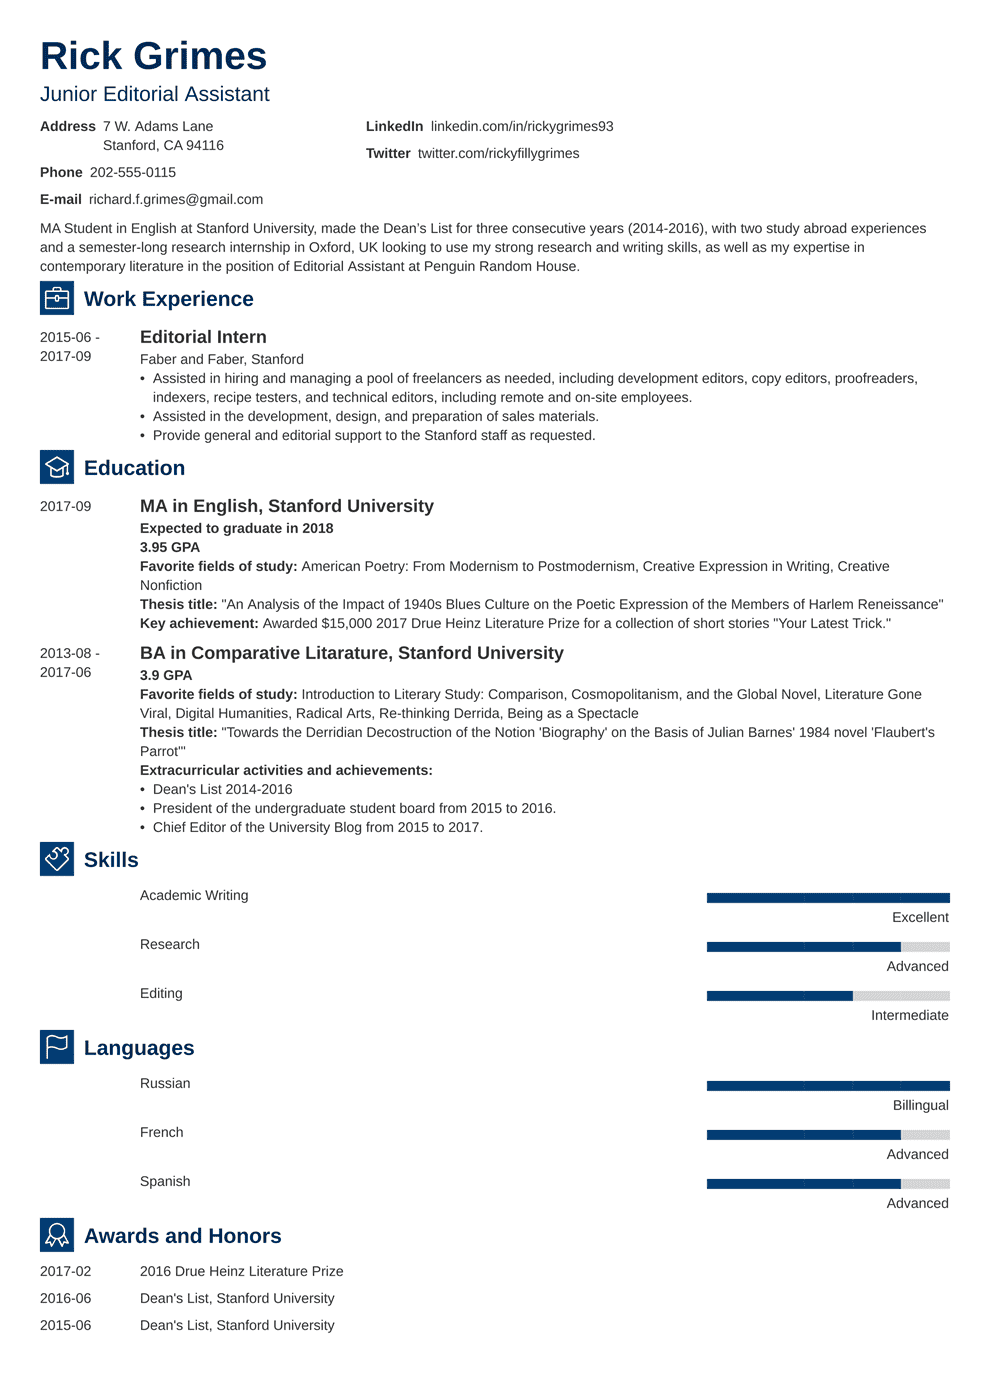 Entry Level Resume: Template & Guide [20+ Examples]